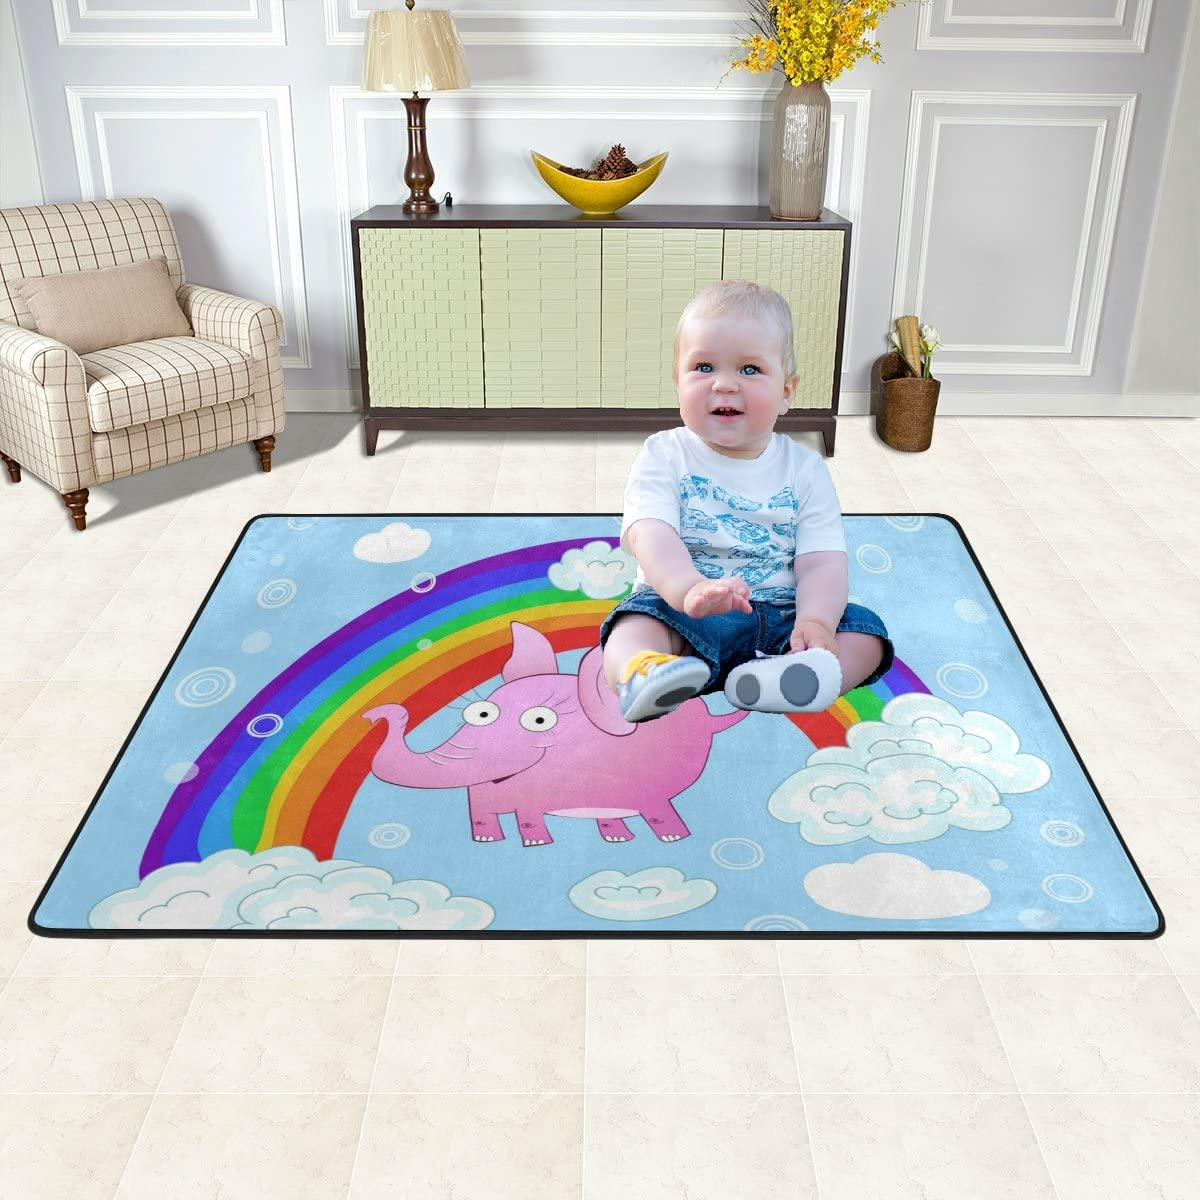 Fun Pink Elephant Kid Play Mat Baby Crawling Area Rug Soft Non-Slip Large Floor Mat for Playroom Bedroom Classroom 4' x 6'